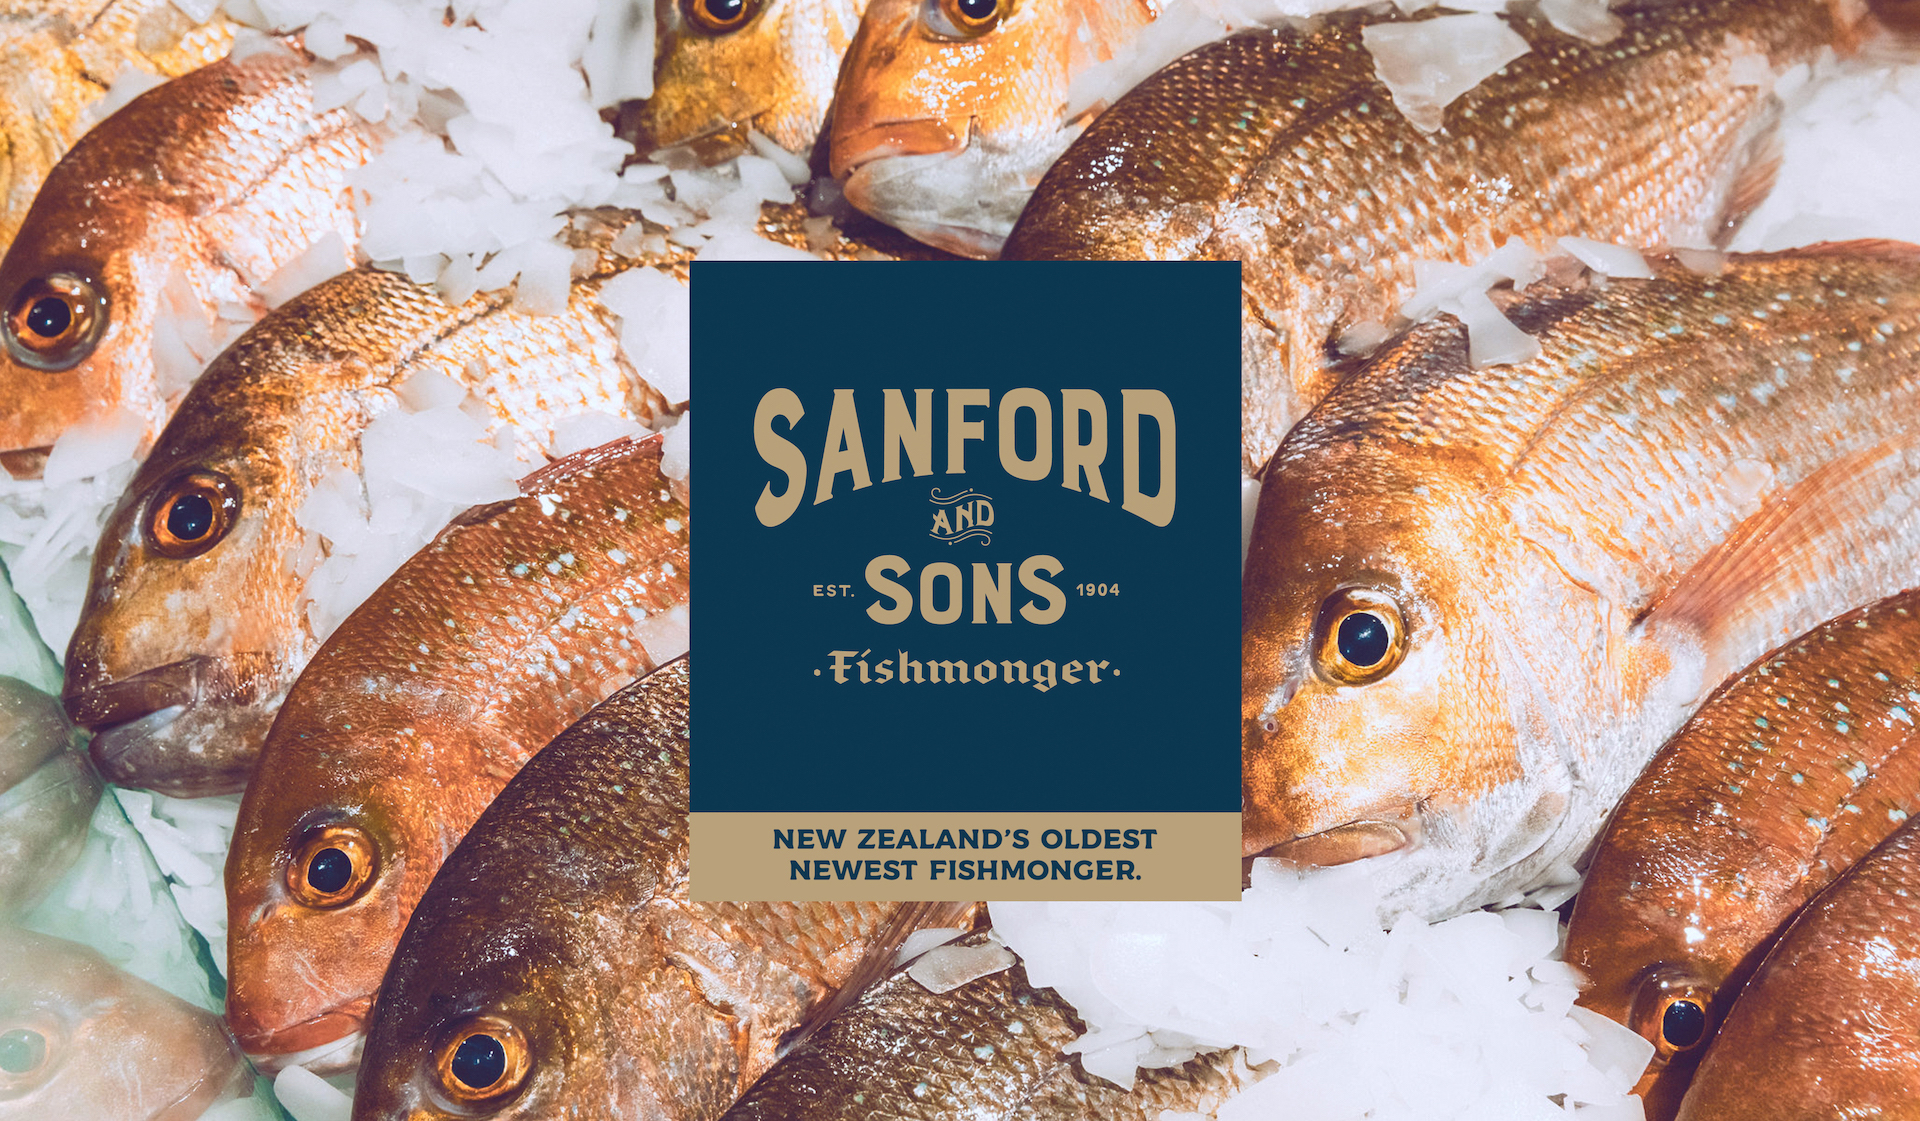 Sanford and Sons Fishmonger